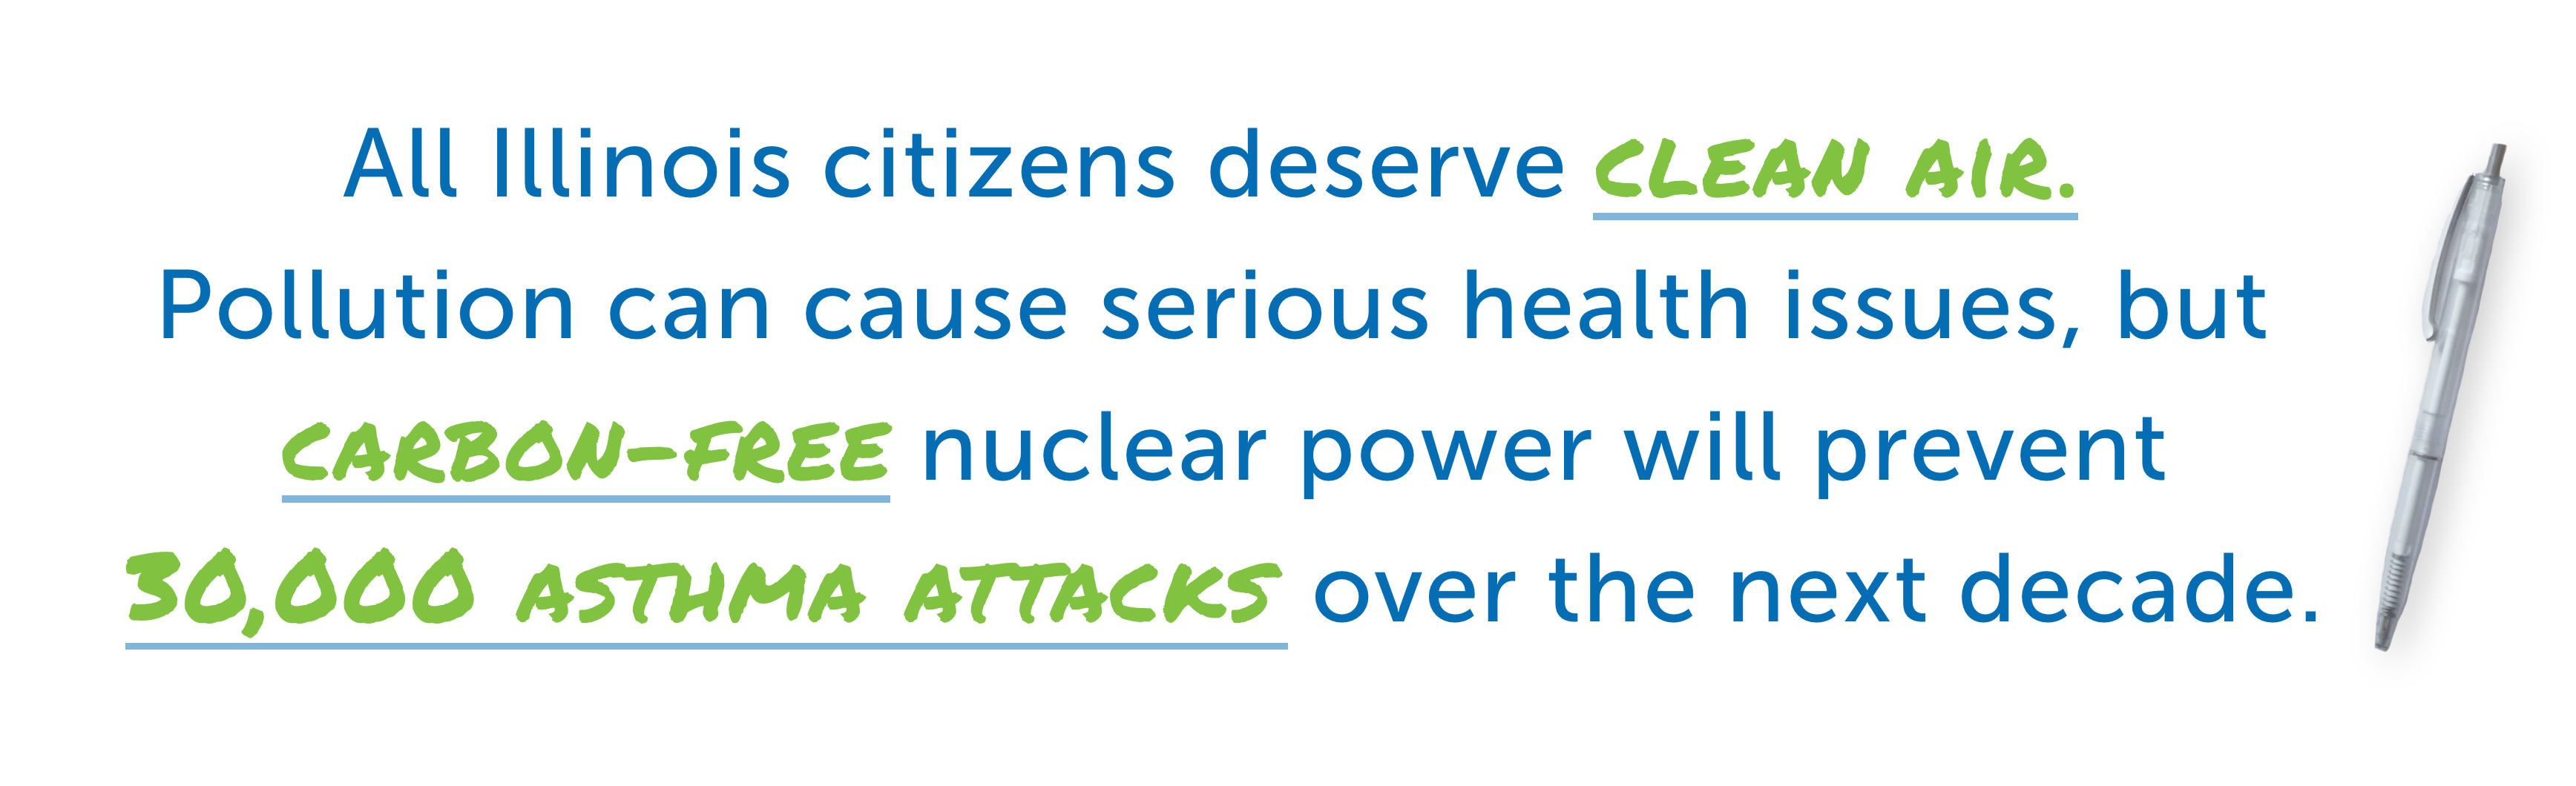 All Illinois citizens deserve clean air.  Pollution can cause serious health issues, but  carbon-free nuclear power will prevent 30,000 asthma attacks over the next decade.